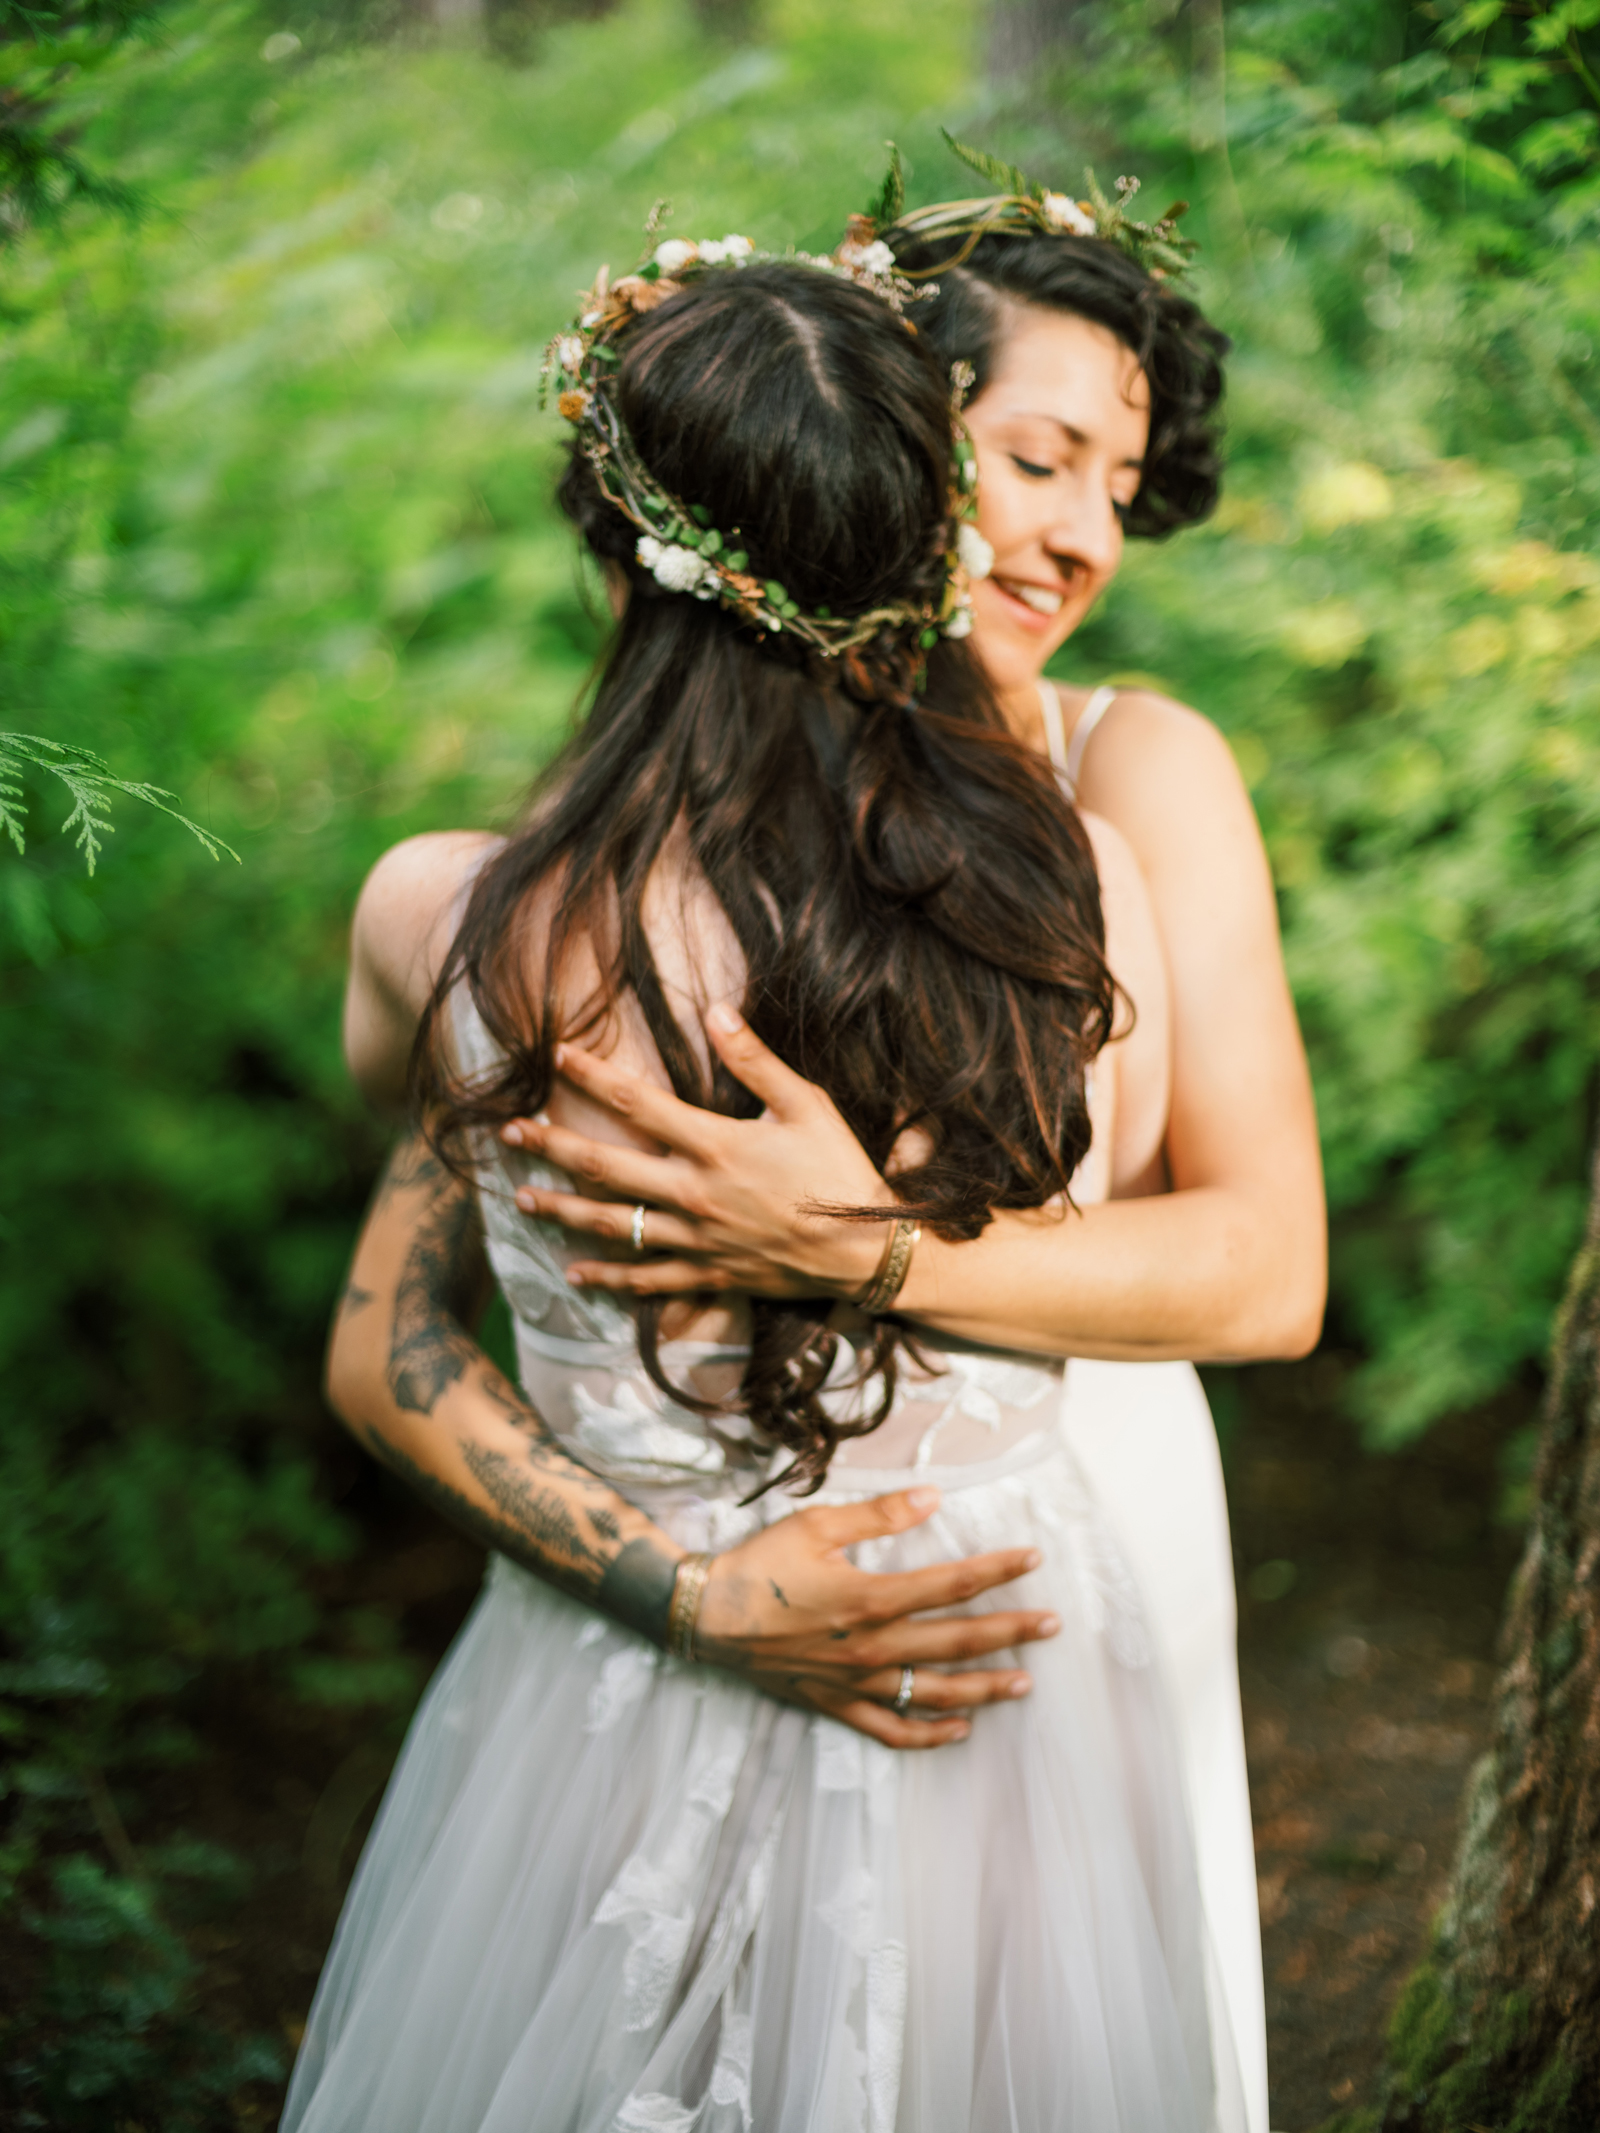 brides hugging during wedding portraits outside in forest